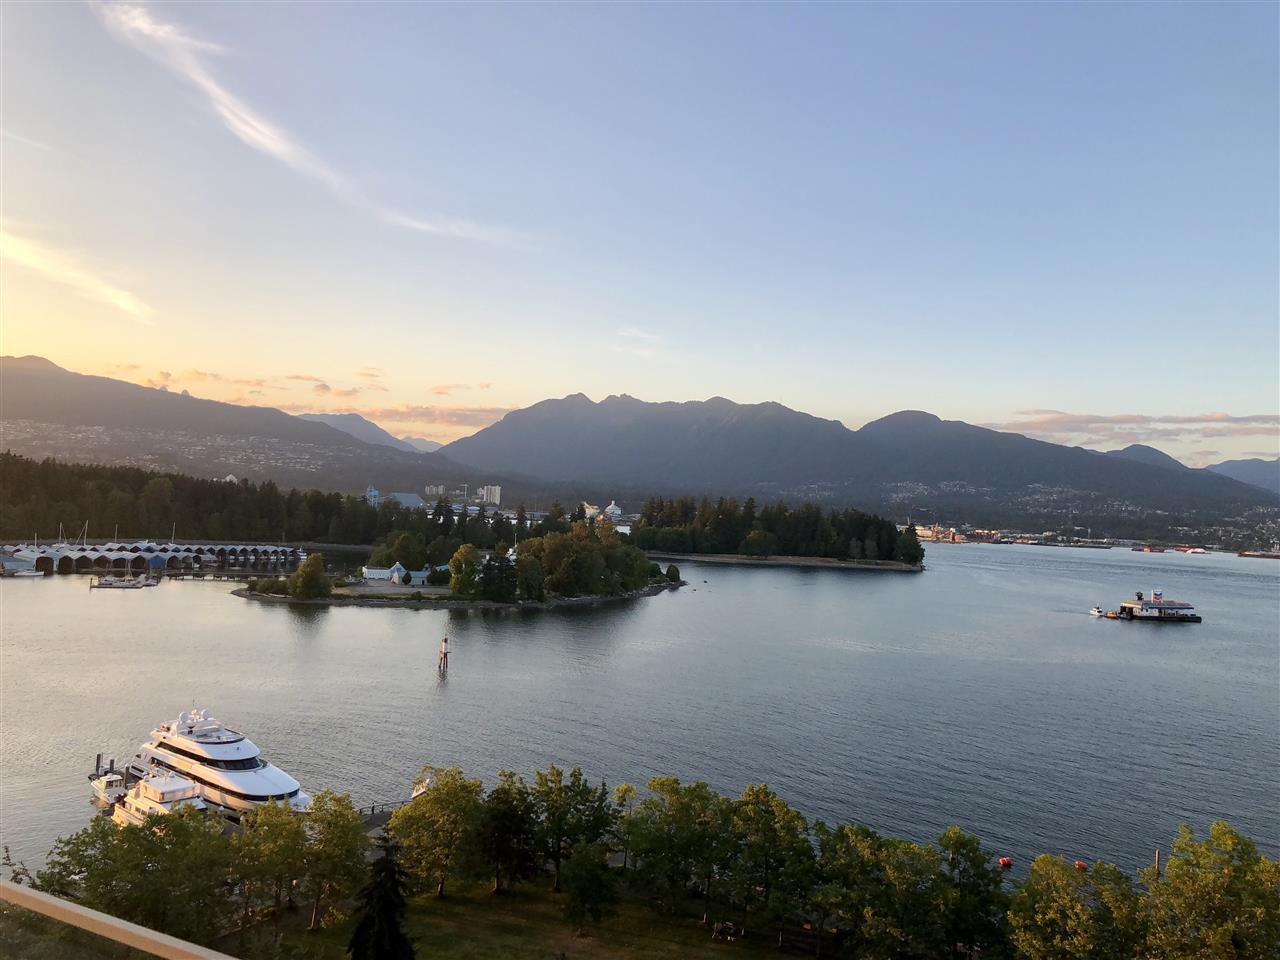 Main Photo: 1404 1281 W CORDOVA STREET in Vancouver: Coal Harbour Condo for sale (Vancouver West)  : MLS®# R2293960